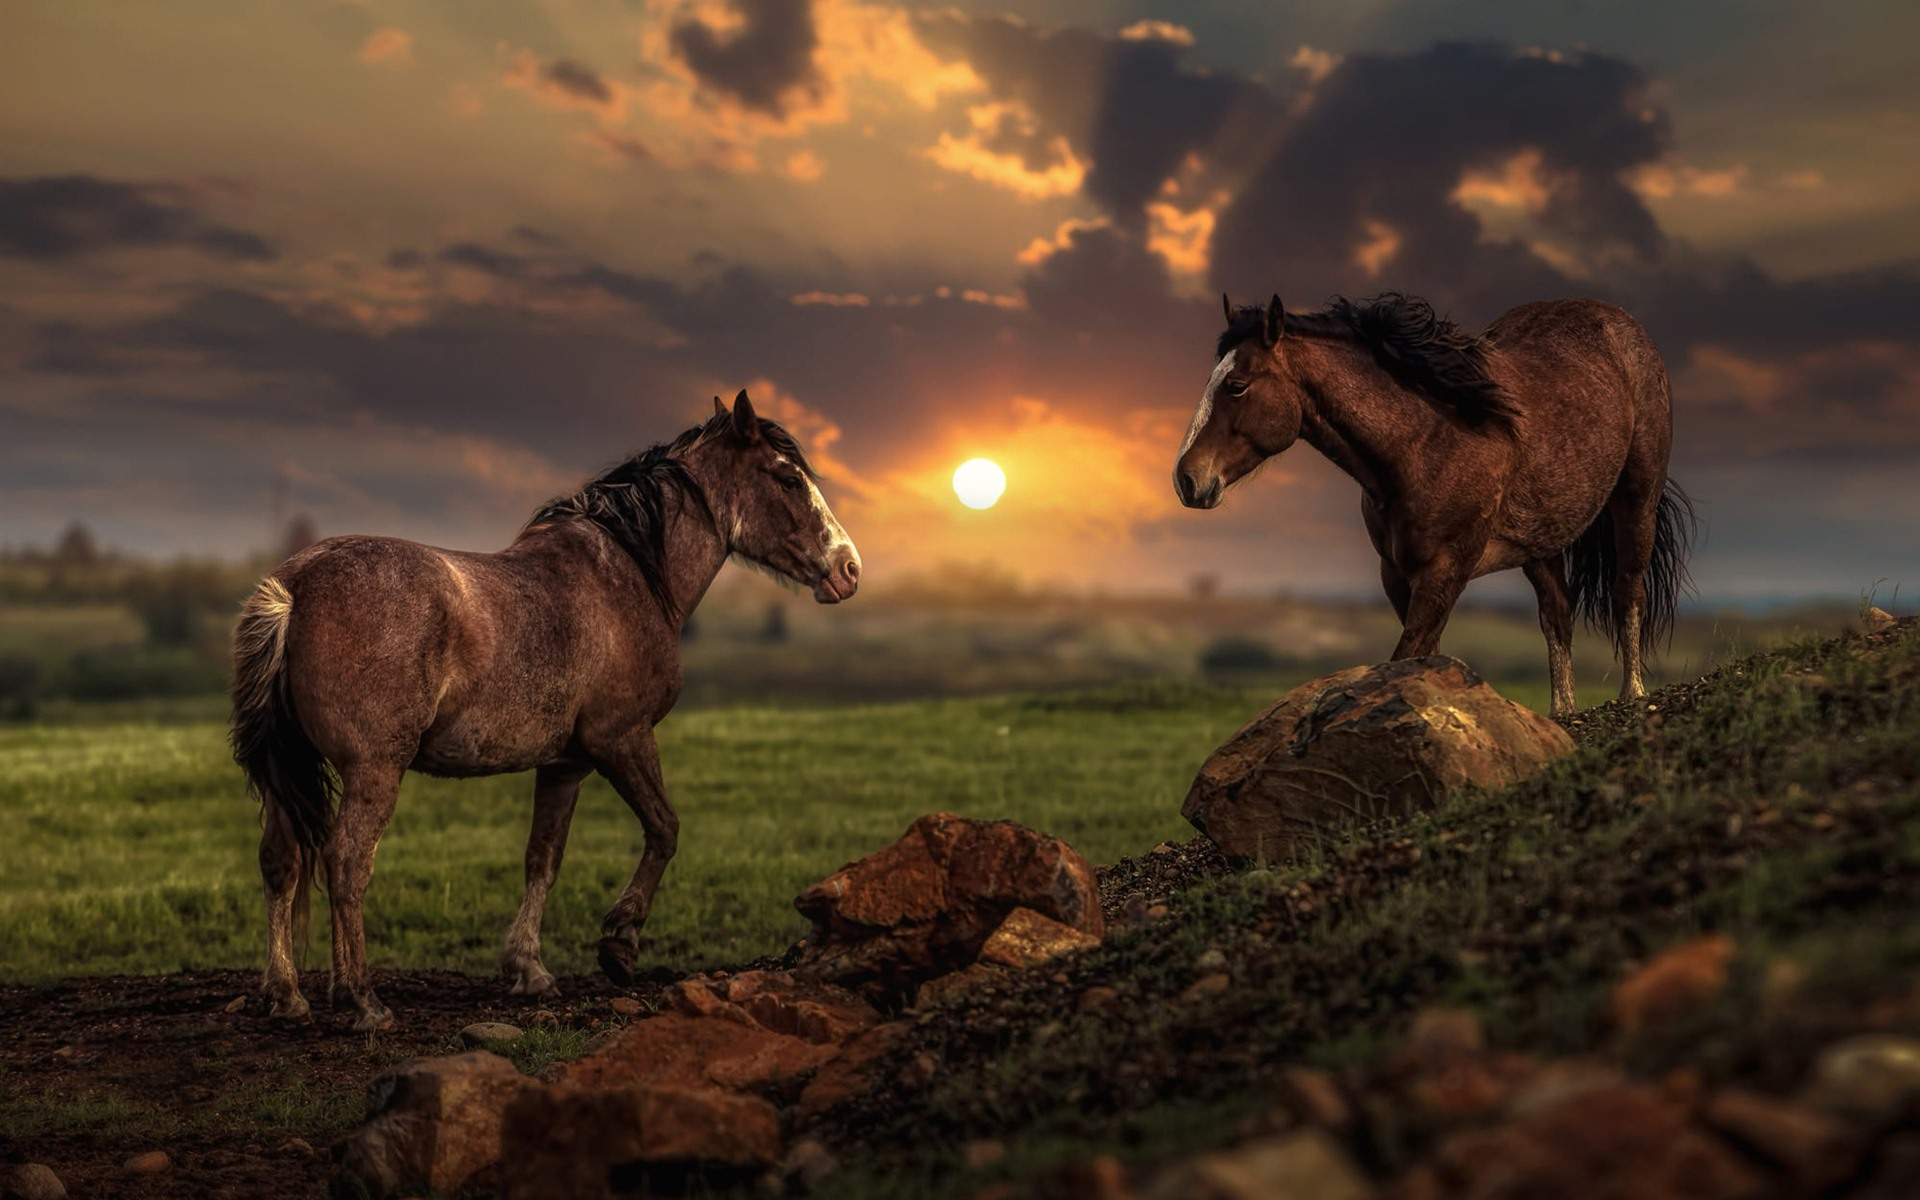 wallpaper two horses sunset 1920x1200 hd picture image